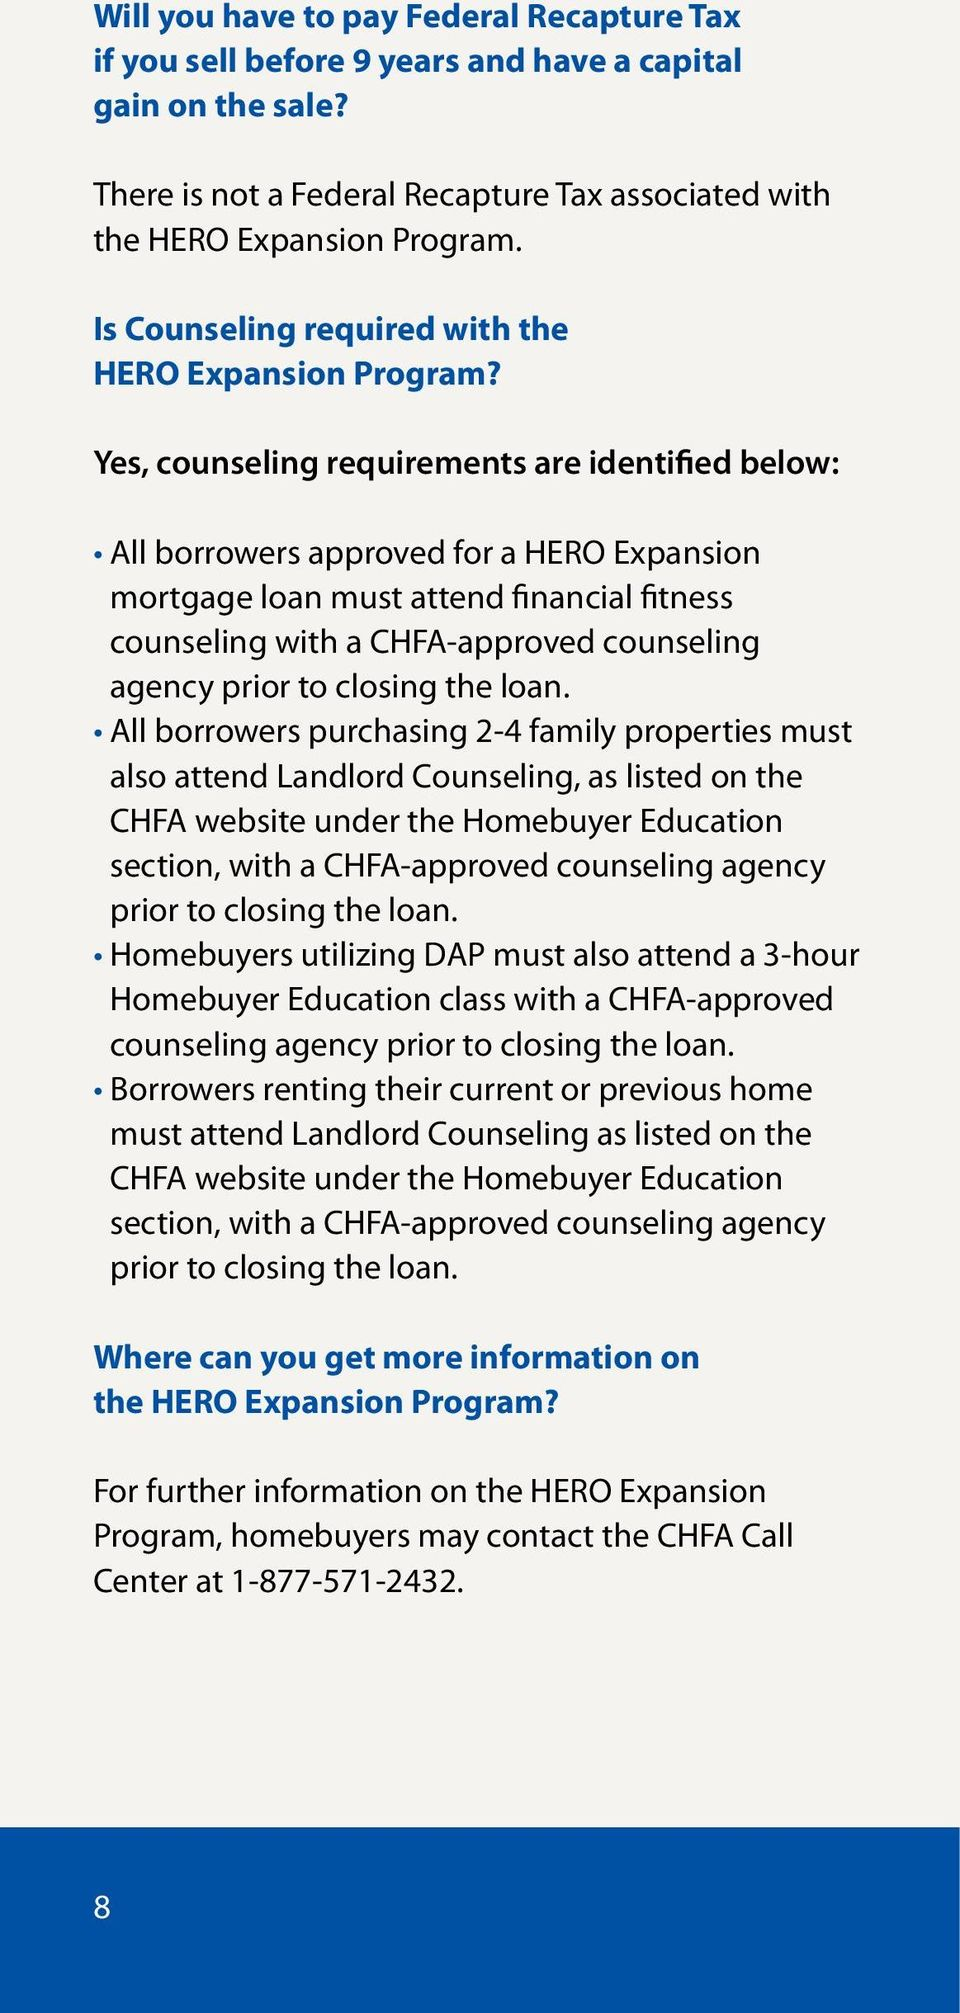 Yes, counseling requirements are identified below: All borrowers approved for a HERO Expansion mortgage loan must attend financial fitness counseling with a CHFA-approved counseling agency prior to